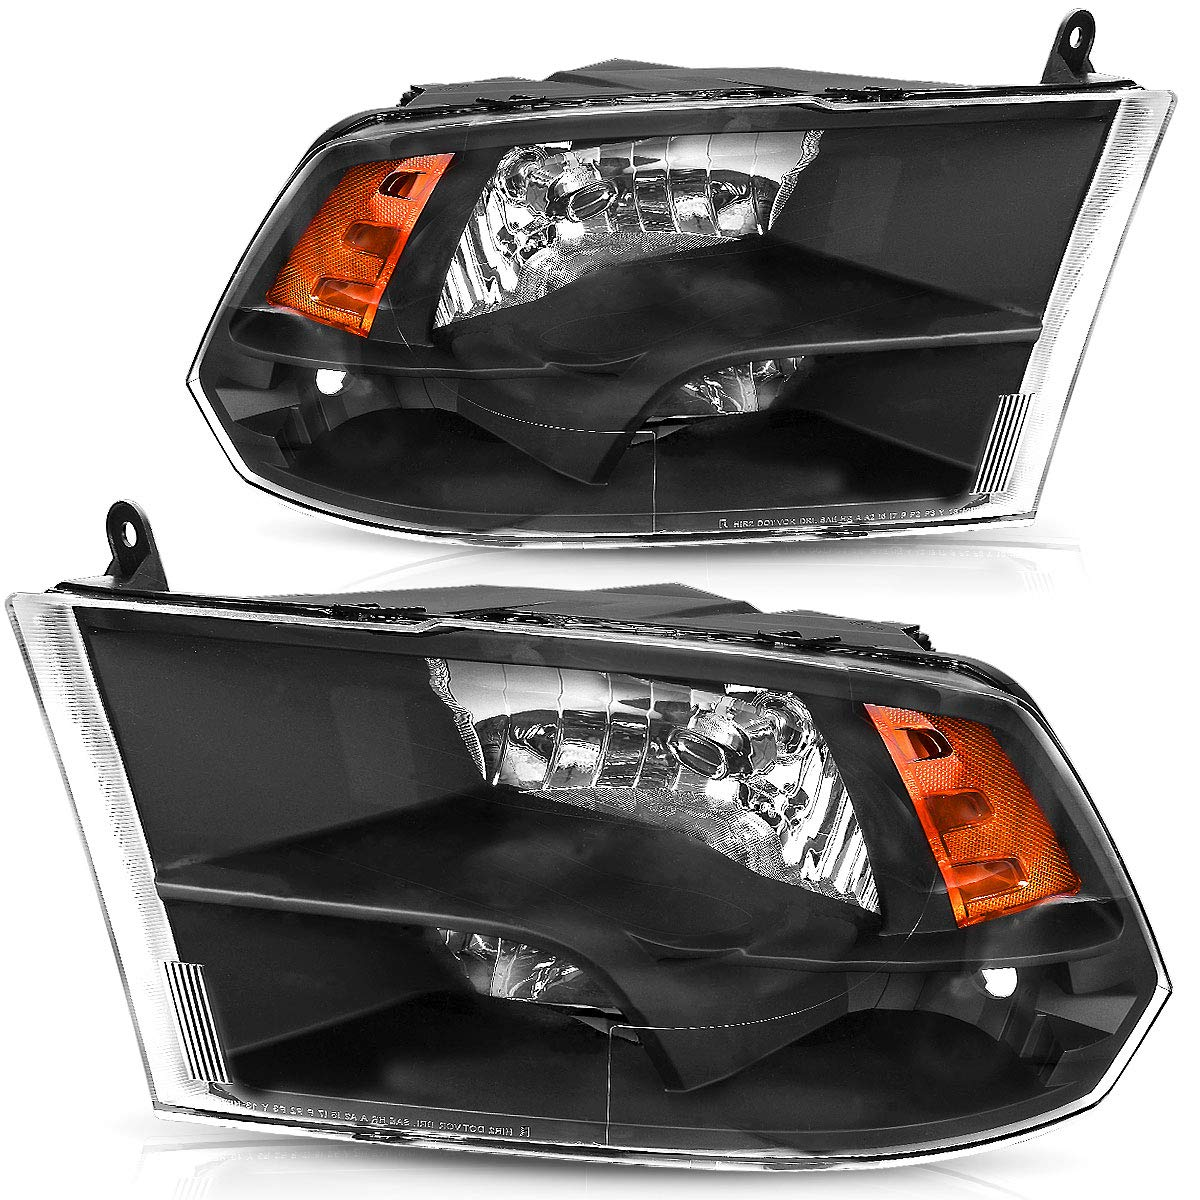 Headlights Replacement for 2009-2018 Dodge Ram 1500 2500 3500 Pickup Headlamp Assembly Black